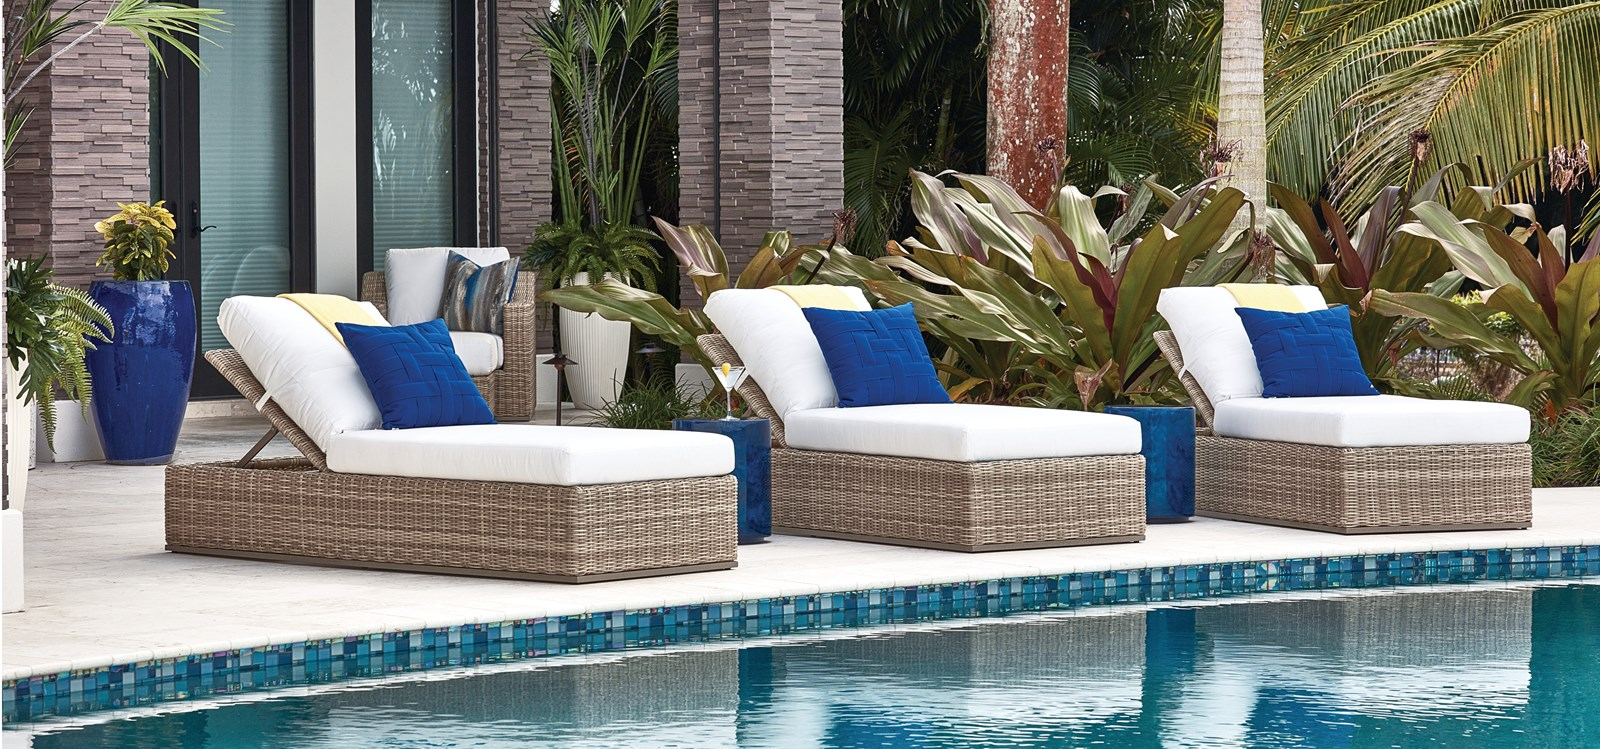 Montery Outdoor Living Chaises